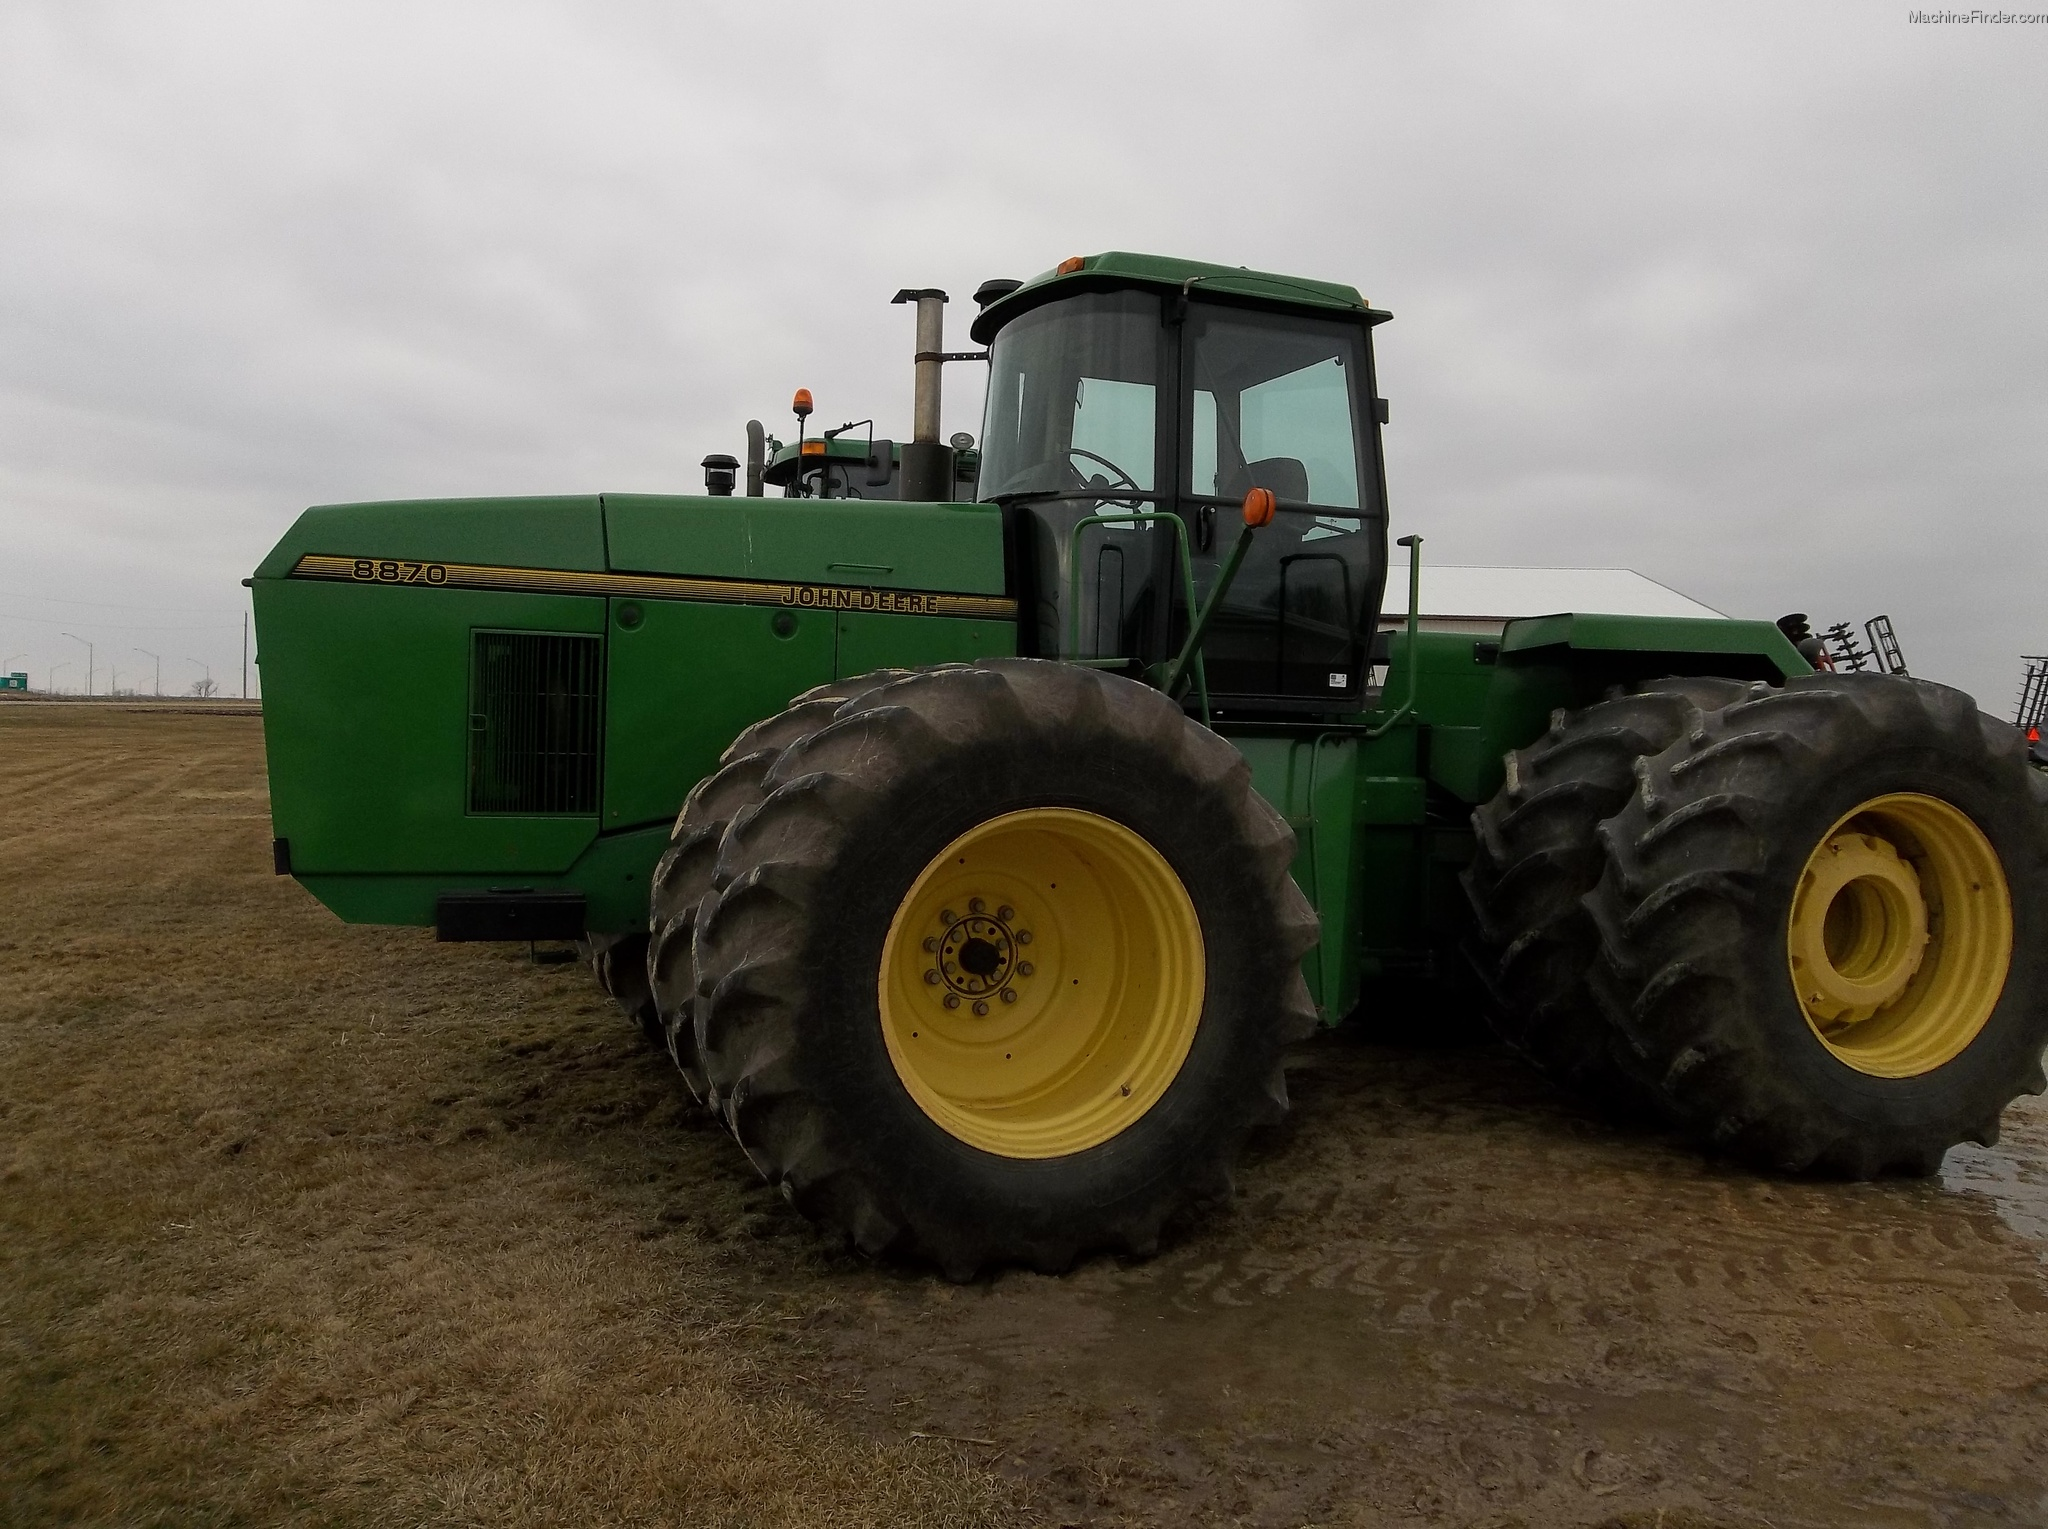 Image Gallery: A Review of the John Deere 8870